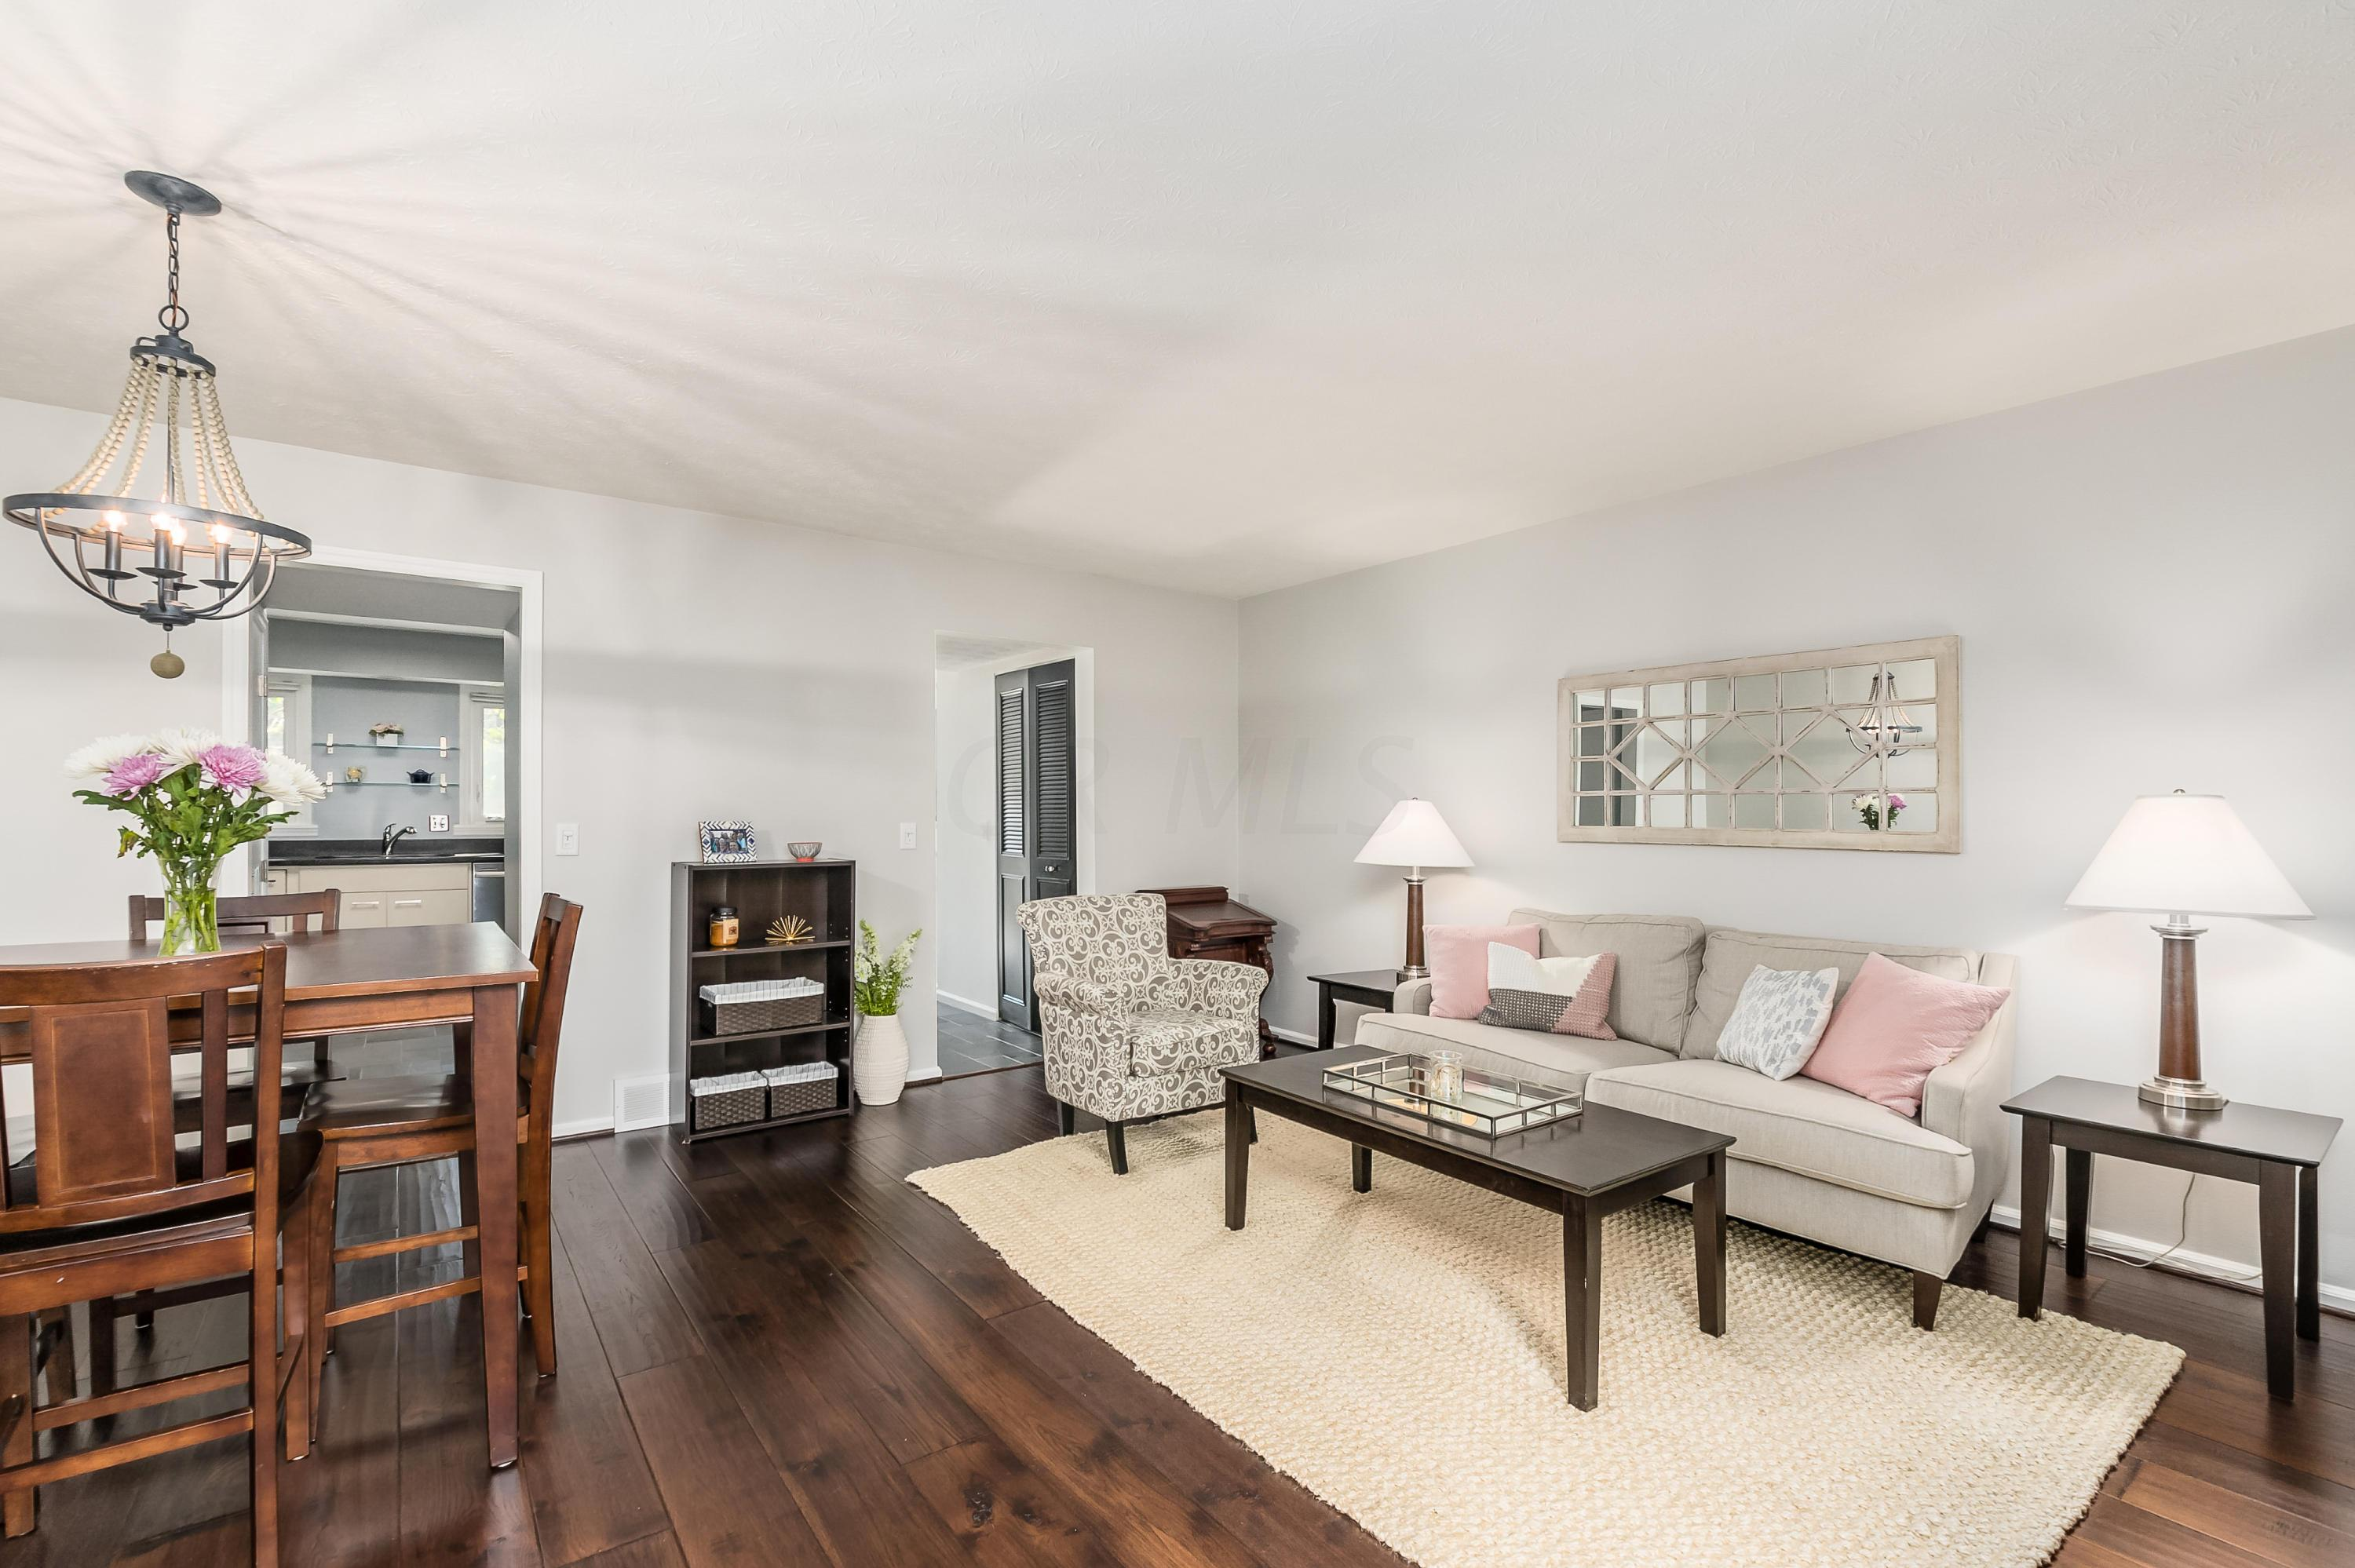 2802 Churchill Drive, Upper Arlington, Ohio 43221, 2 Bedrooms Bedrooms, ,2 BathroomsBathrooms,Residential,For Sale,Churchill,220031296